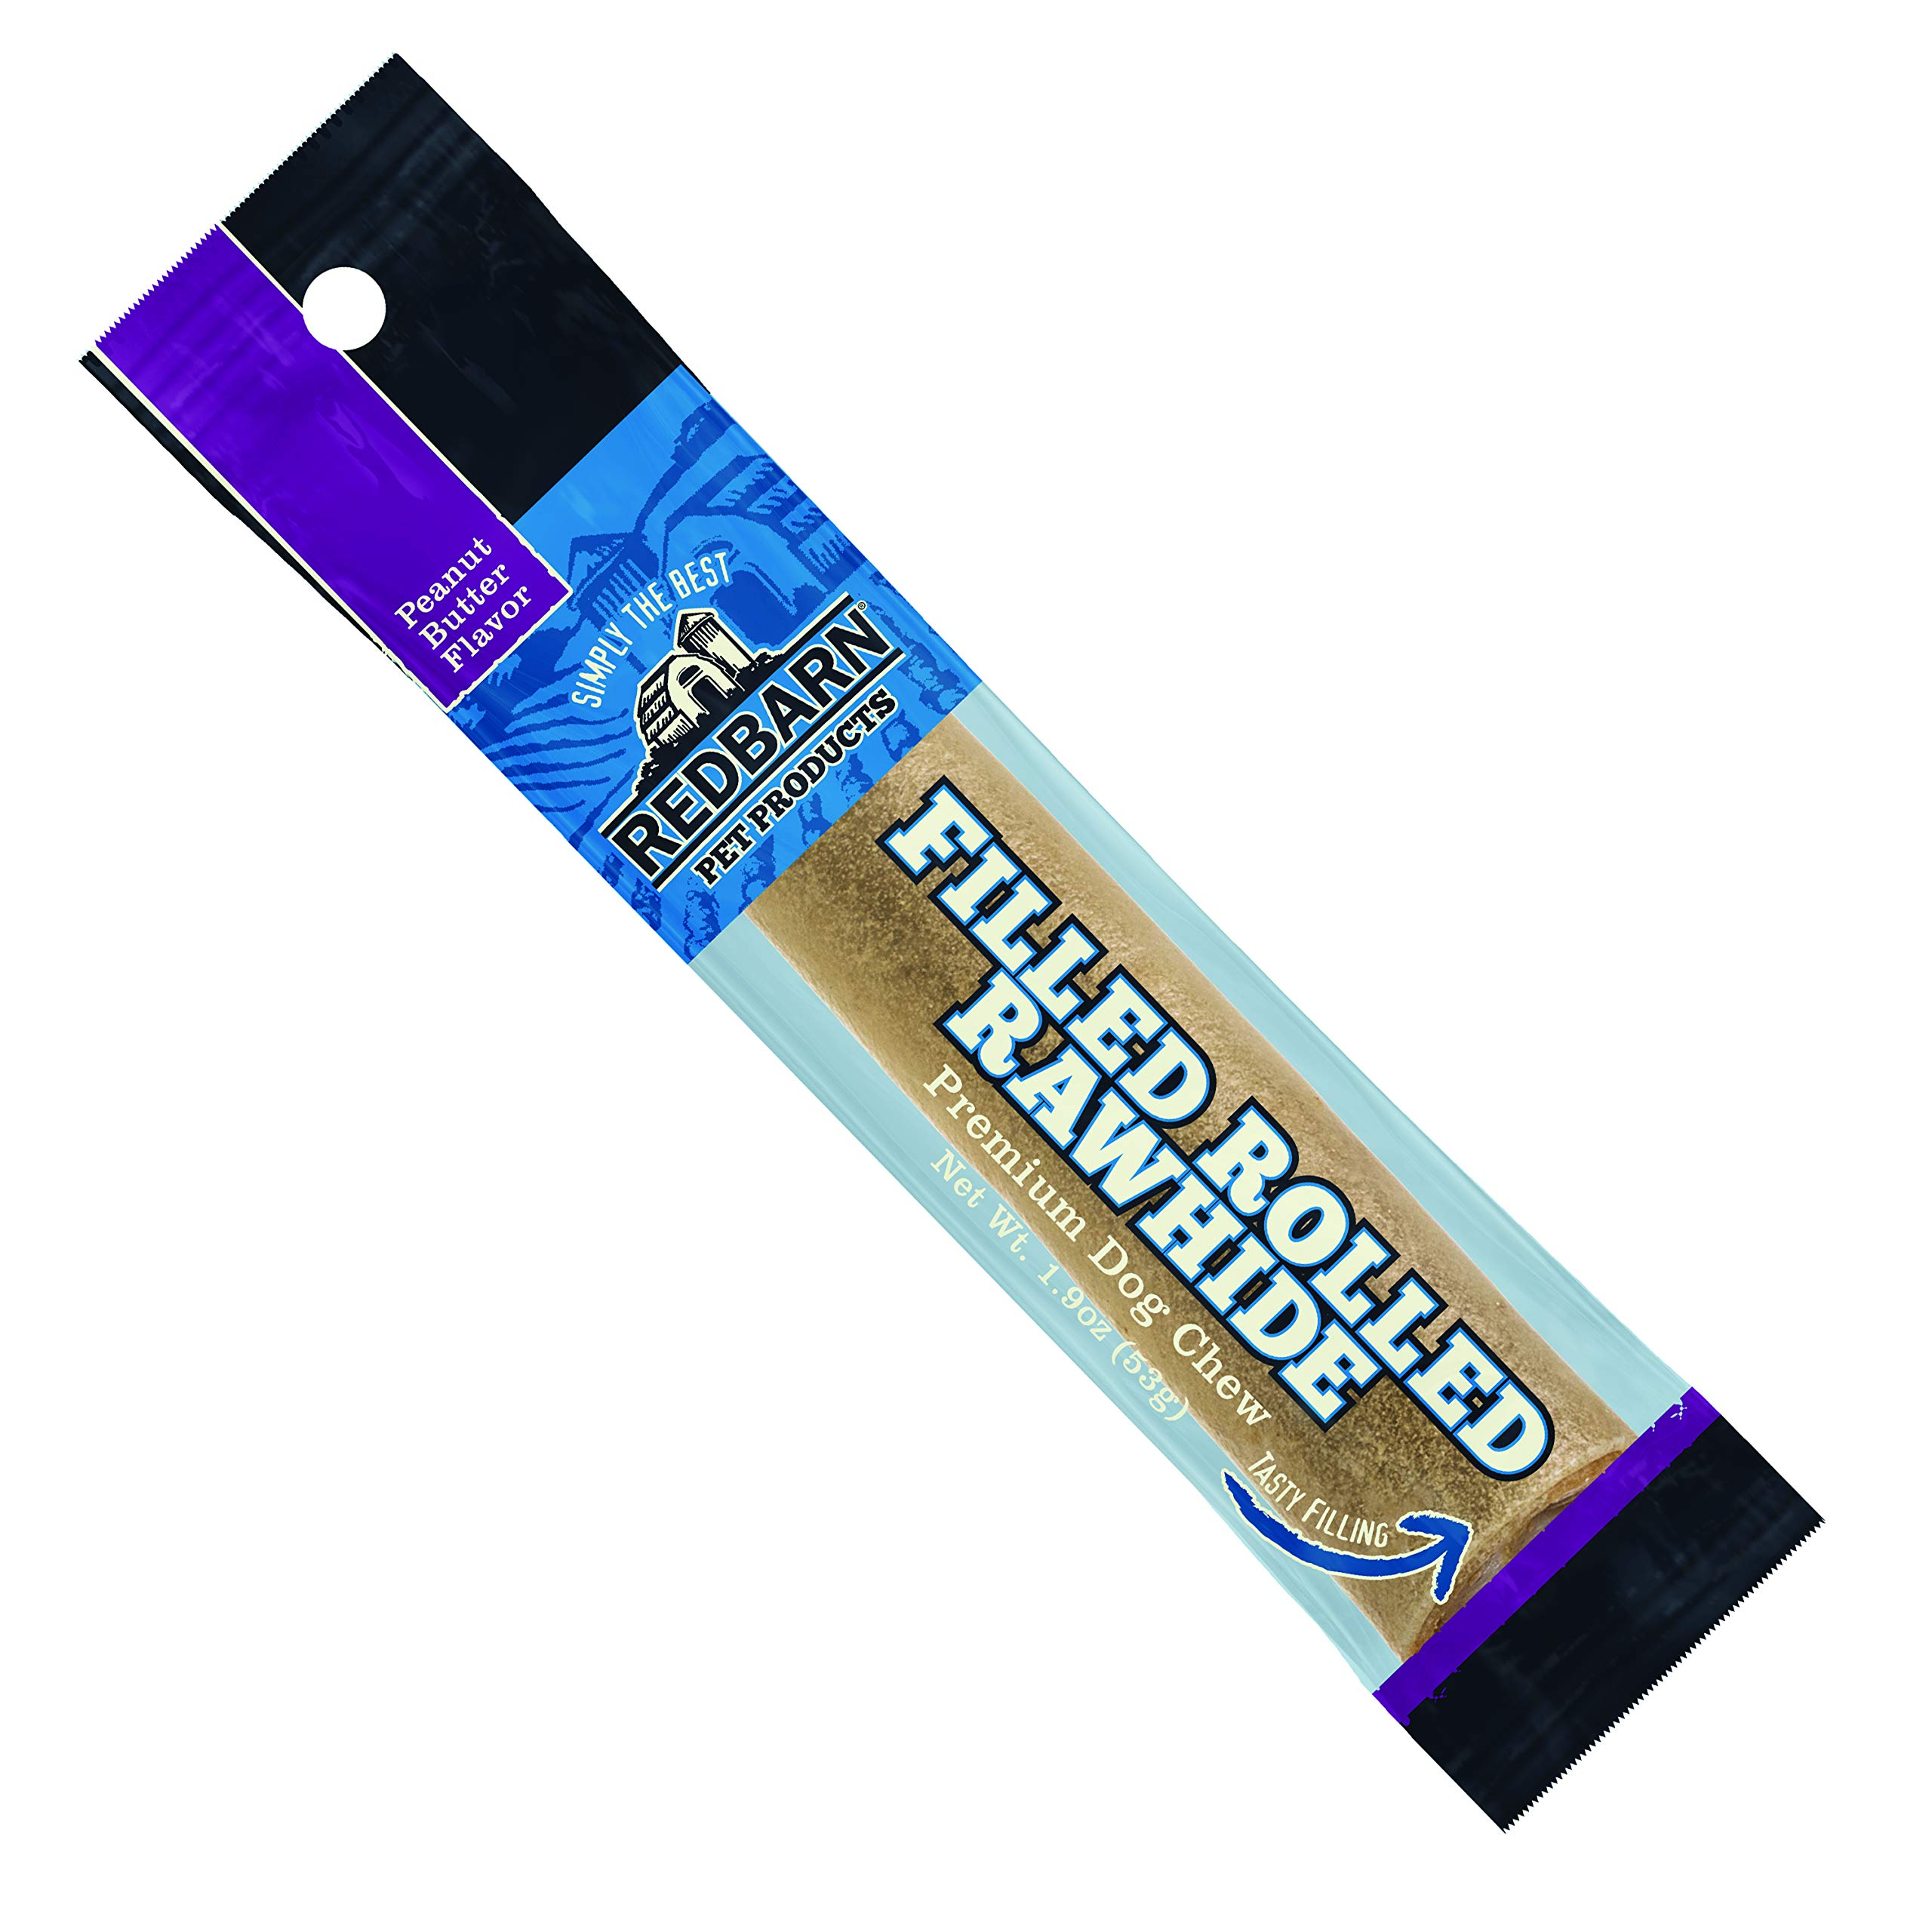 Redbarn Filled Rolled Rawhide, 6 Inch, Peanut Butter Flavor Premium Dog Chew, 24 Count by REDBARN